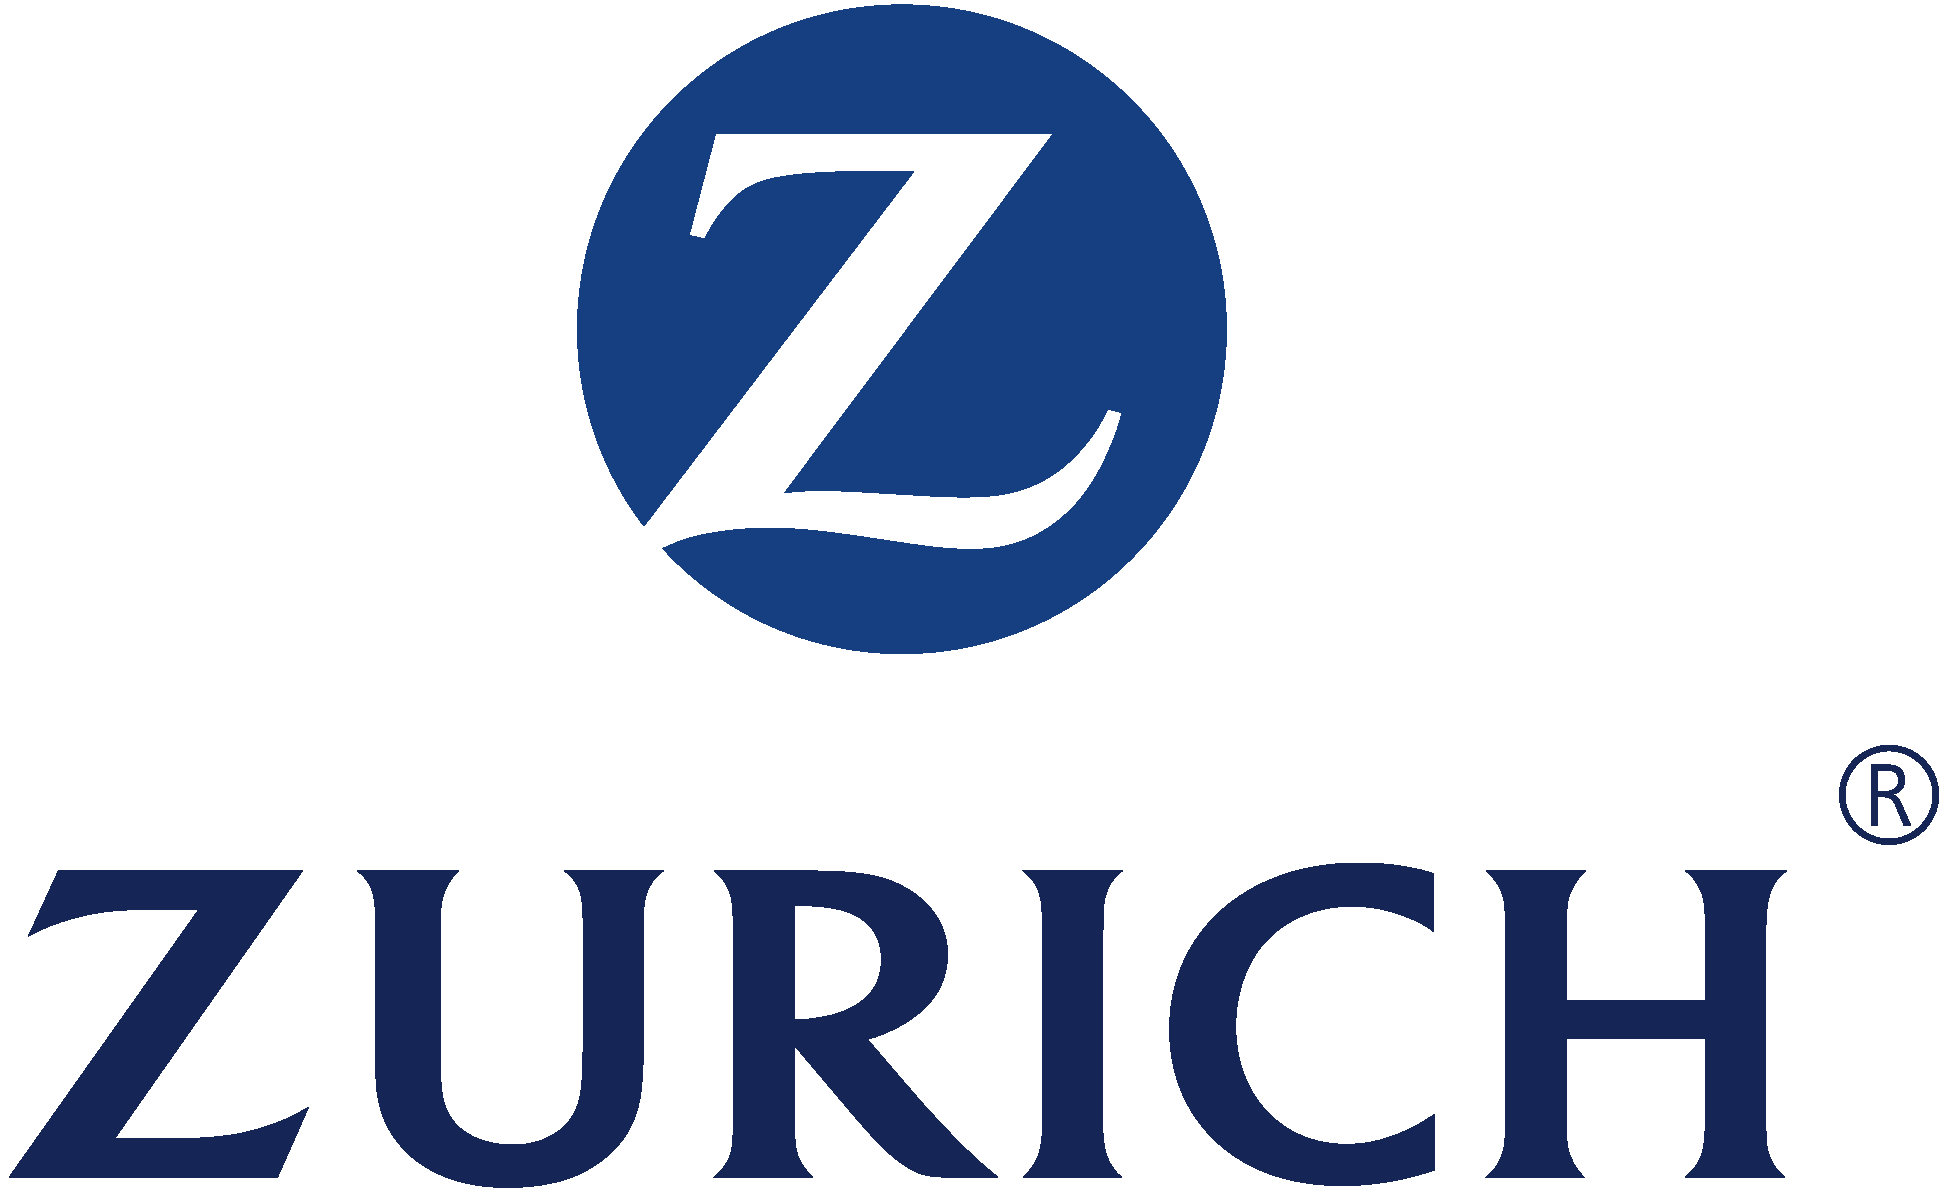 Introducing <strong>Your Life</strong><br/>Instant life insurance from <strong>Zurich</strong> logo